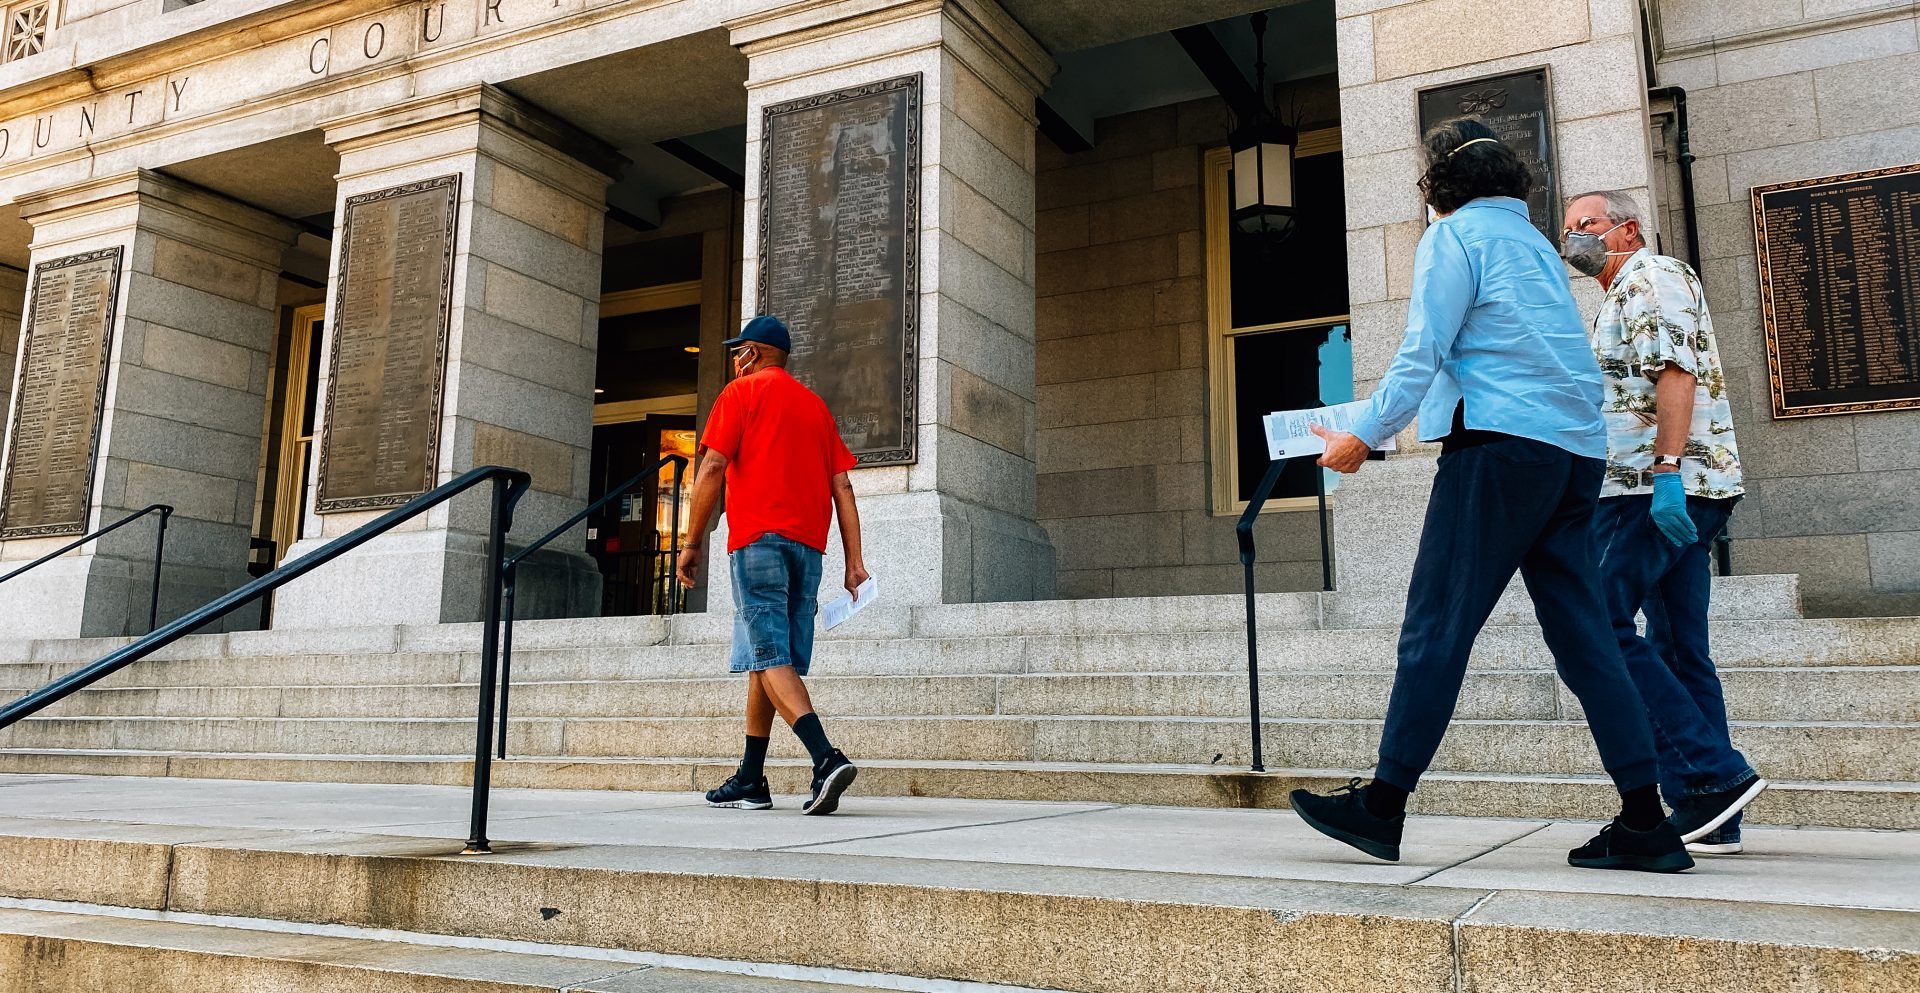 FILE PHOTO: Voters walk along the steps of the York County Courthouse on June 1, 2020, to deposit their ballots in a drop box ahead of the Pennsylvania primary.